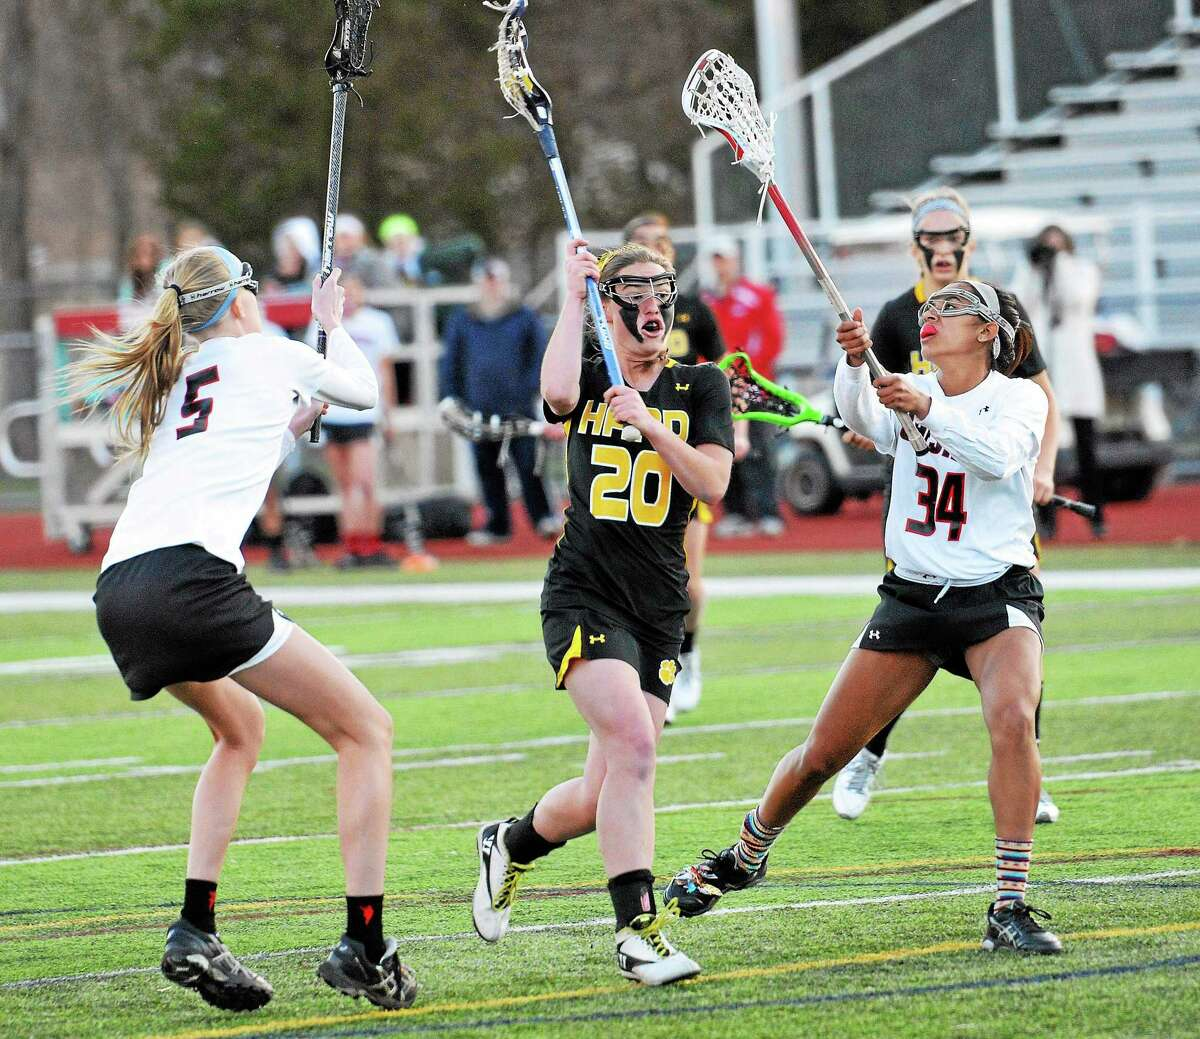 Hand's Lauren Cole takes a shot a goal as Cheshire's Erica Stauffer, left, and Kya O'Donnell defend in 2014.